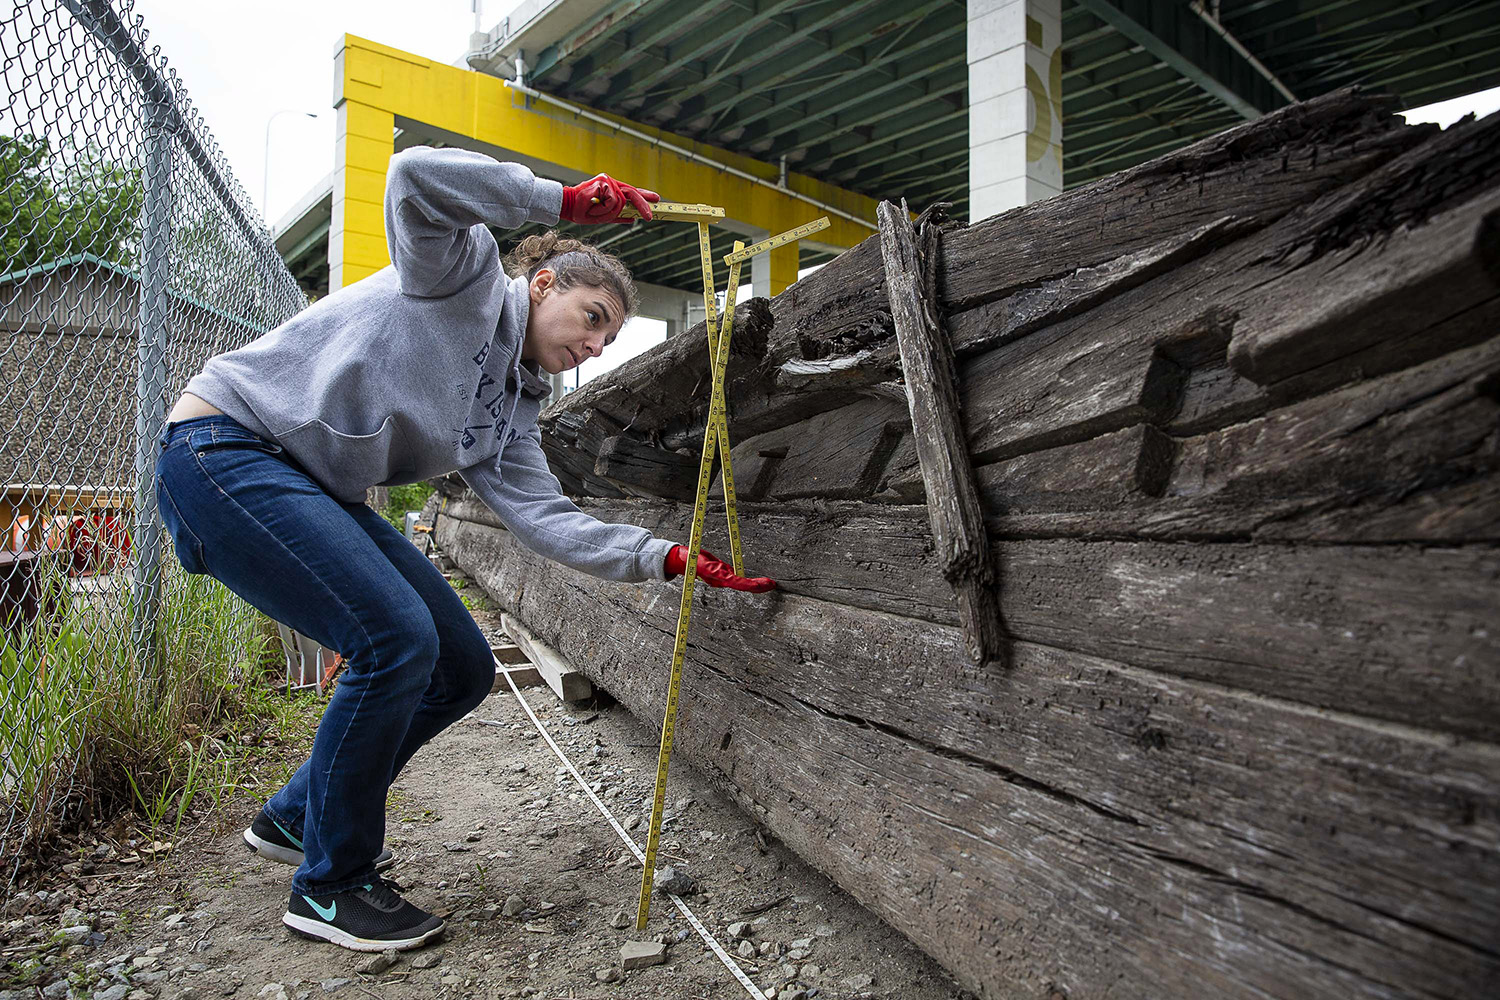 Julia Herbst, a researcher from Texas A&M University, takes measurements of a shipwreck discovered underneath a construction site, Toronto, Wednesday, June 6, 2018.